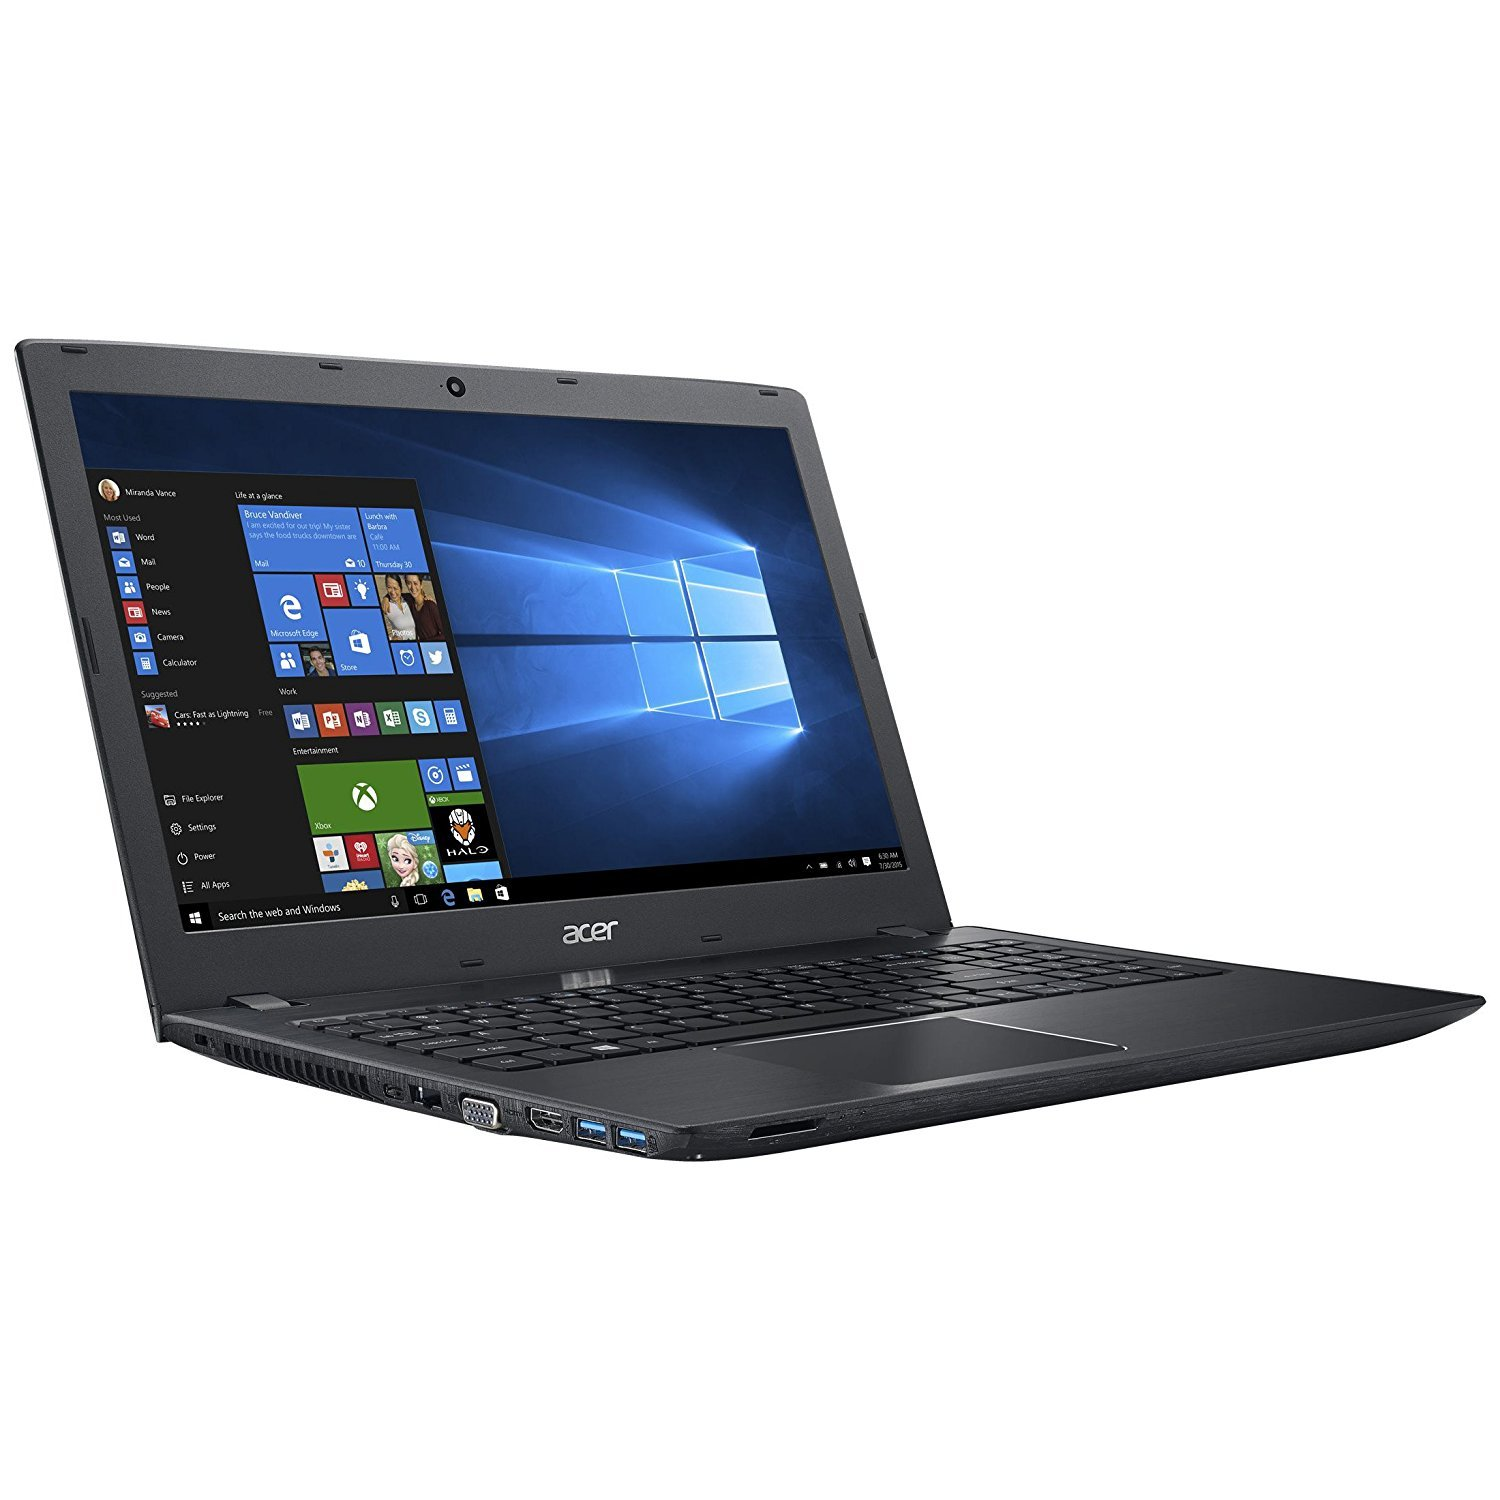 Acer Extensa 5230E Notebook NVIDIA Display Windows 8